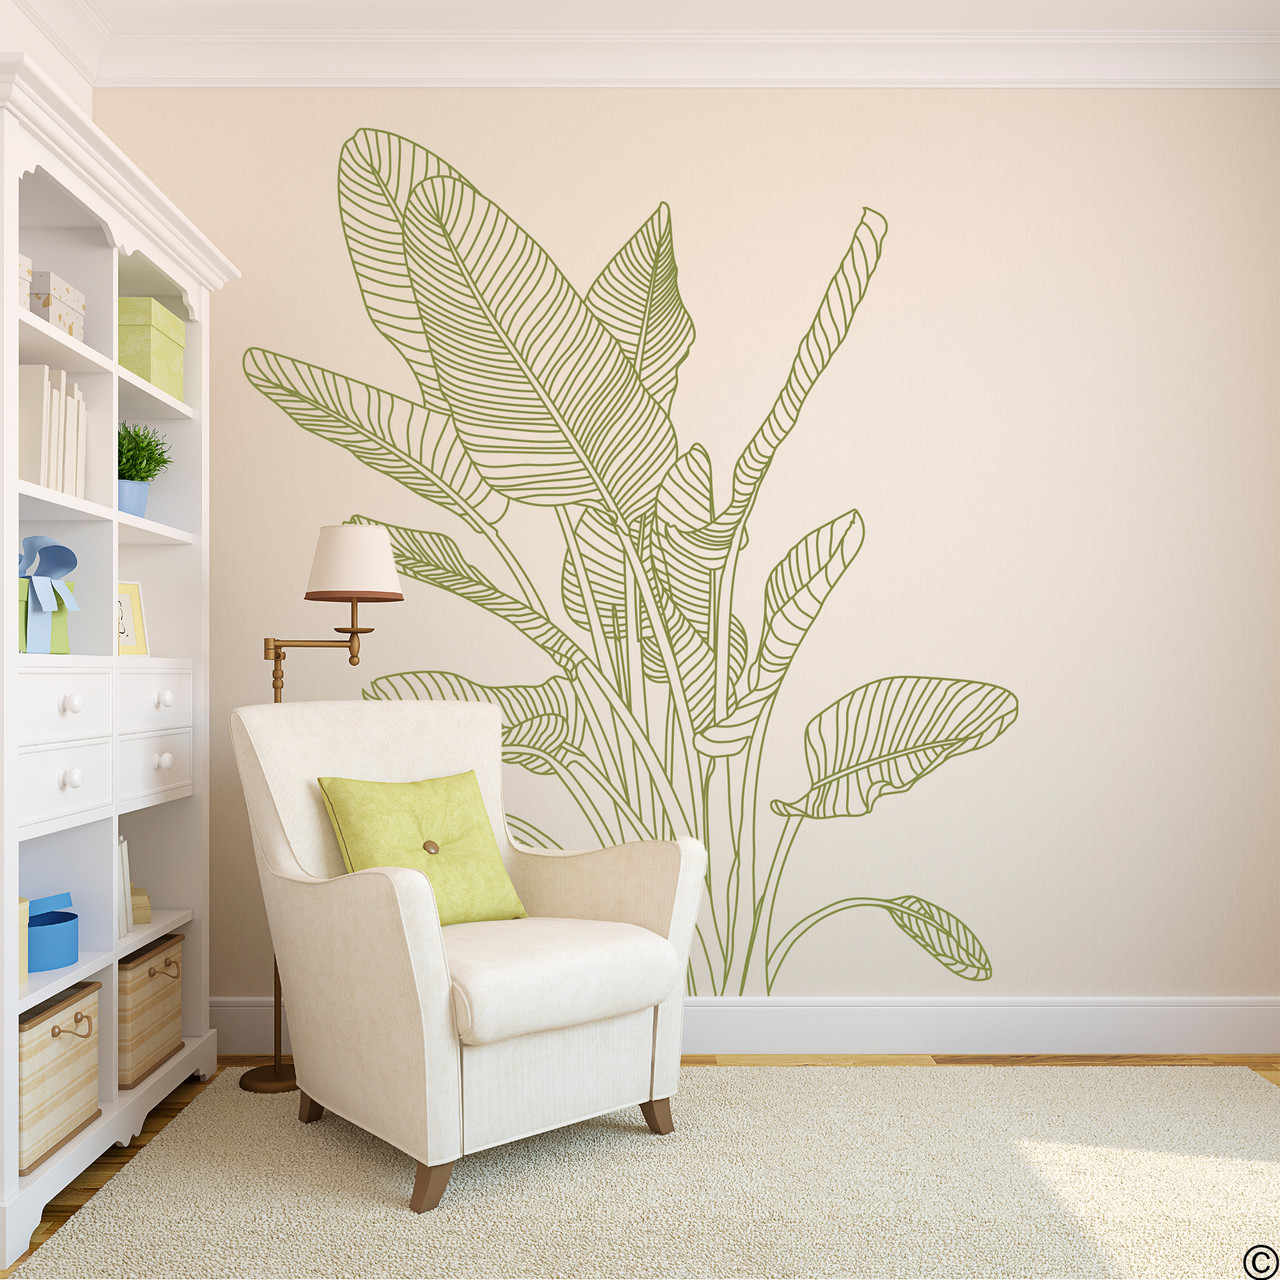 The Bird of Paradise wall decal art shown here in limited edition marsh green vinyl color.